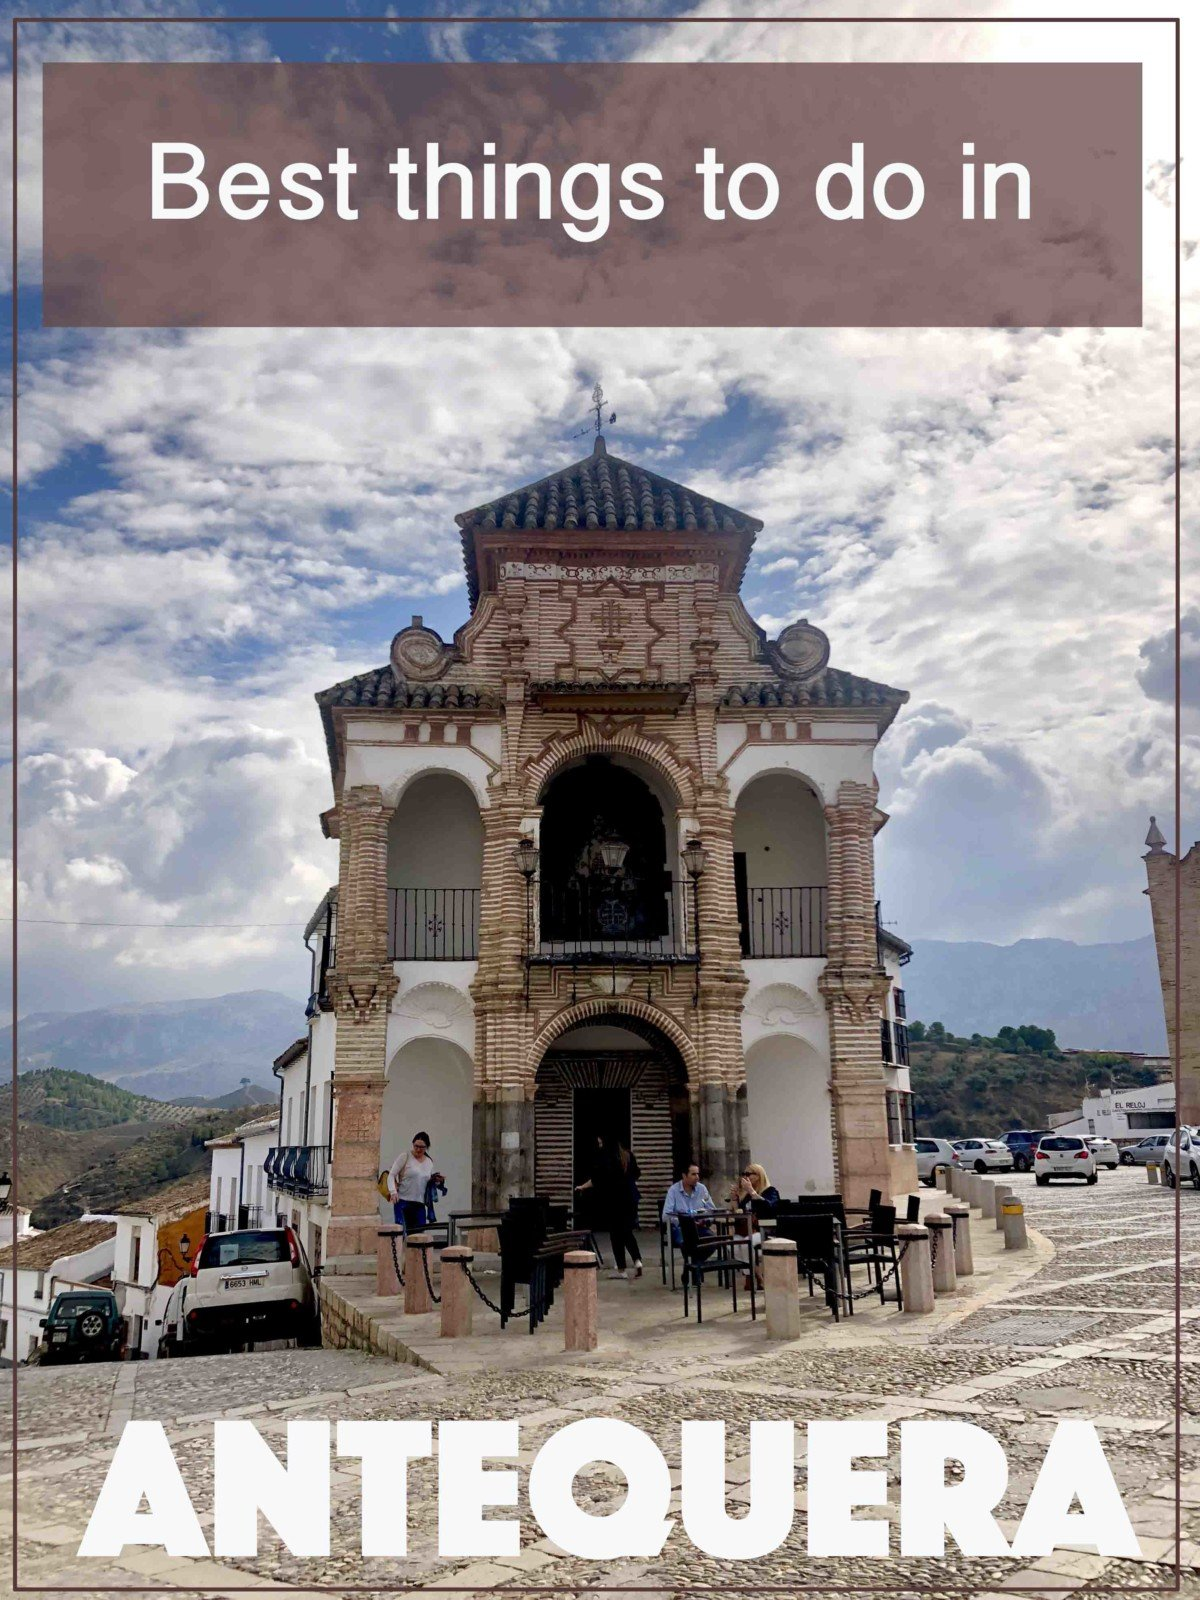 Best things to do in when you visit Antequera Spain, beautiful Churches and history in this day trip from Malaga